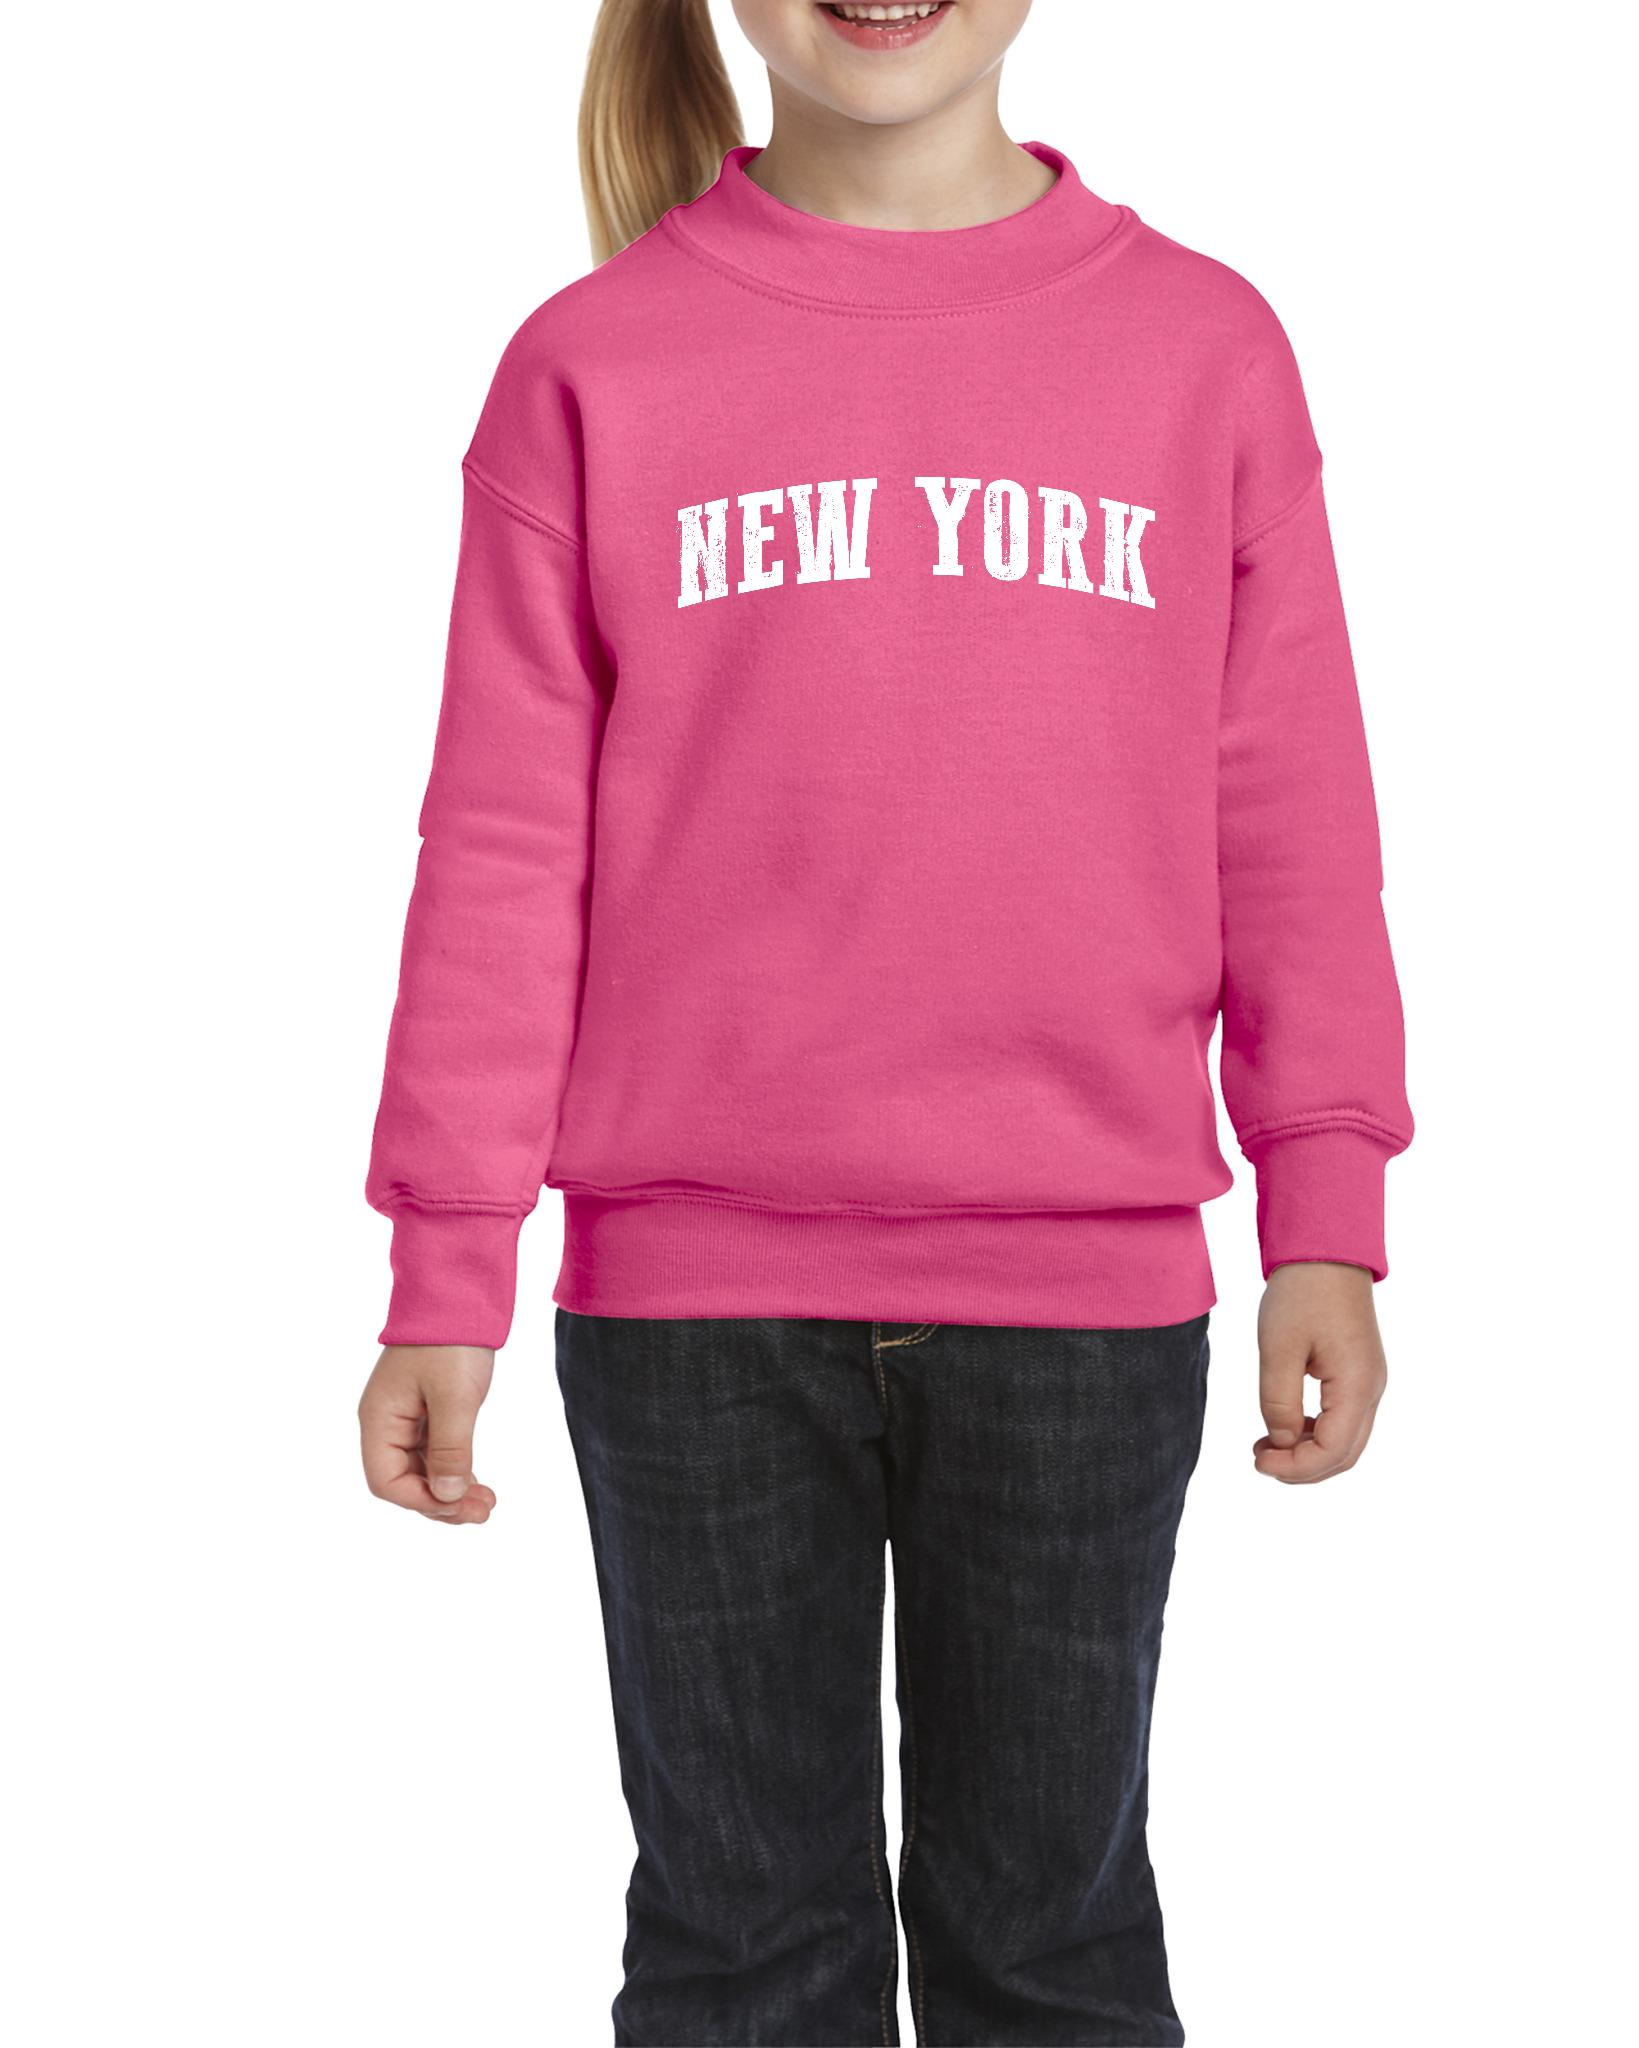 J_H_I NY New York City Hotels Map Tickets Brooklyn Manhattan Times Square USNY  Unisex Youth Kids Crewneck Sweater Clothing